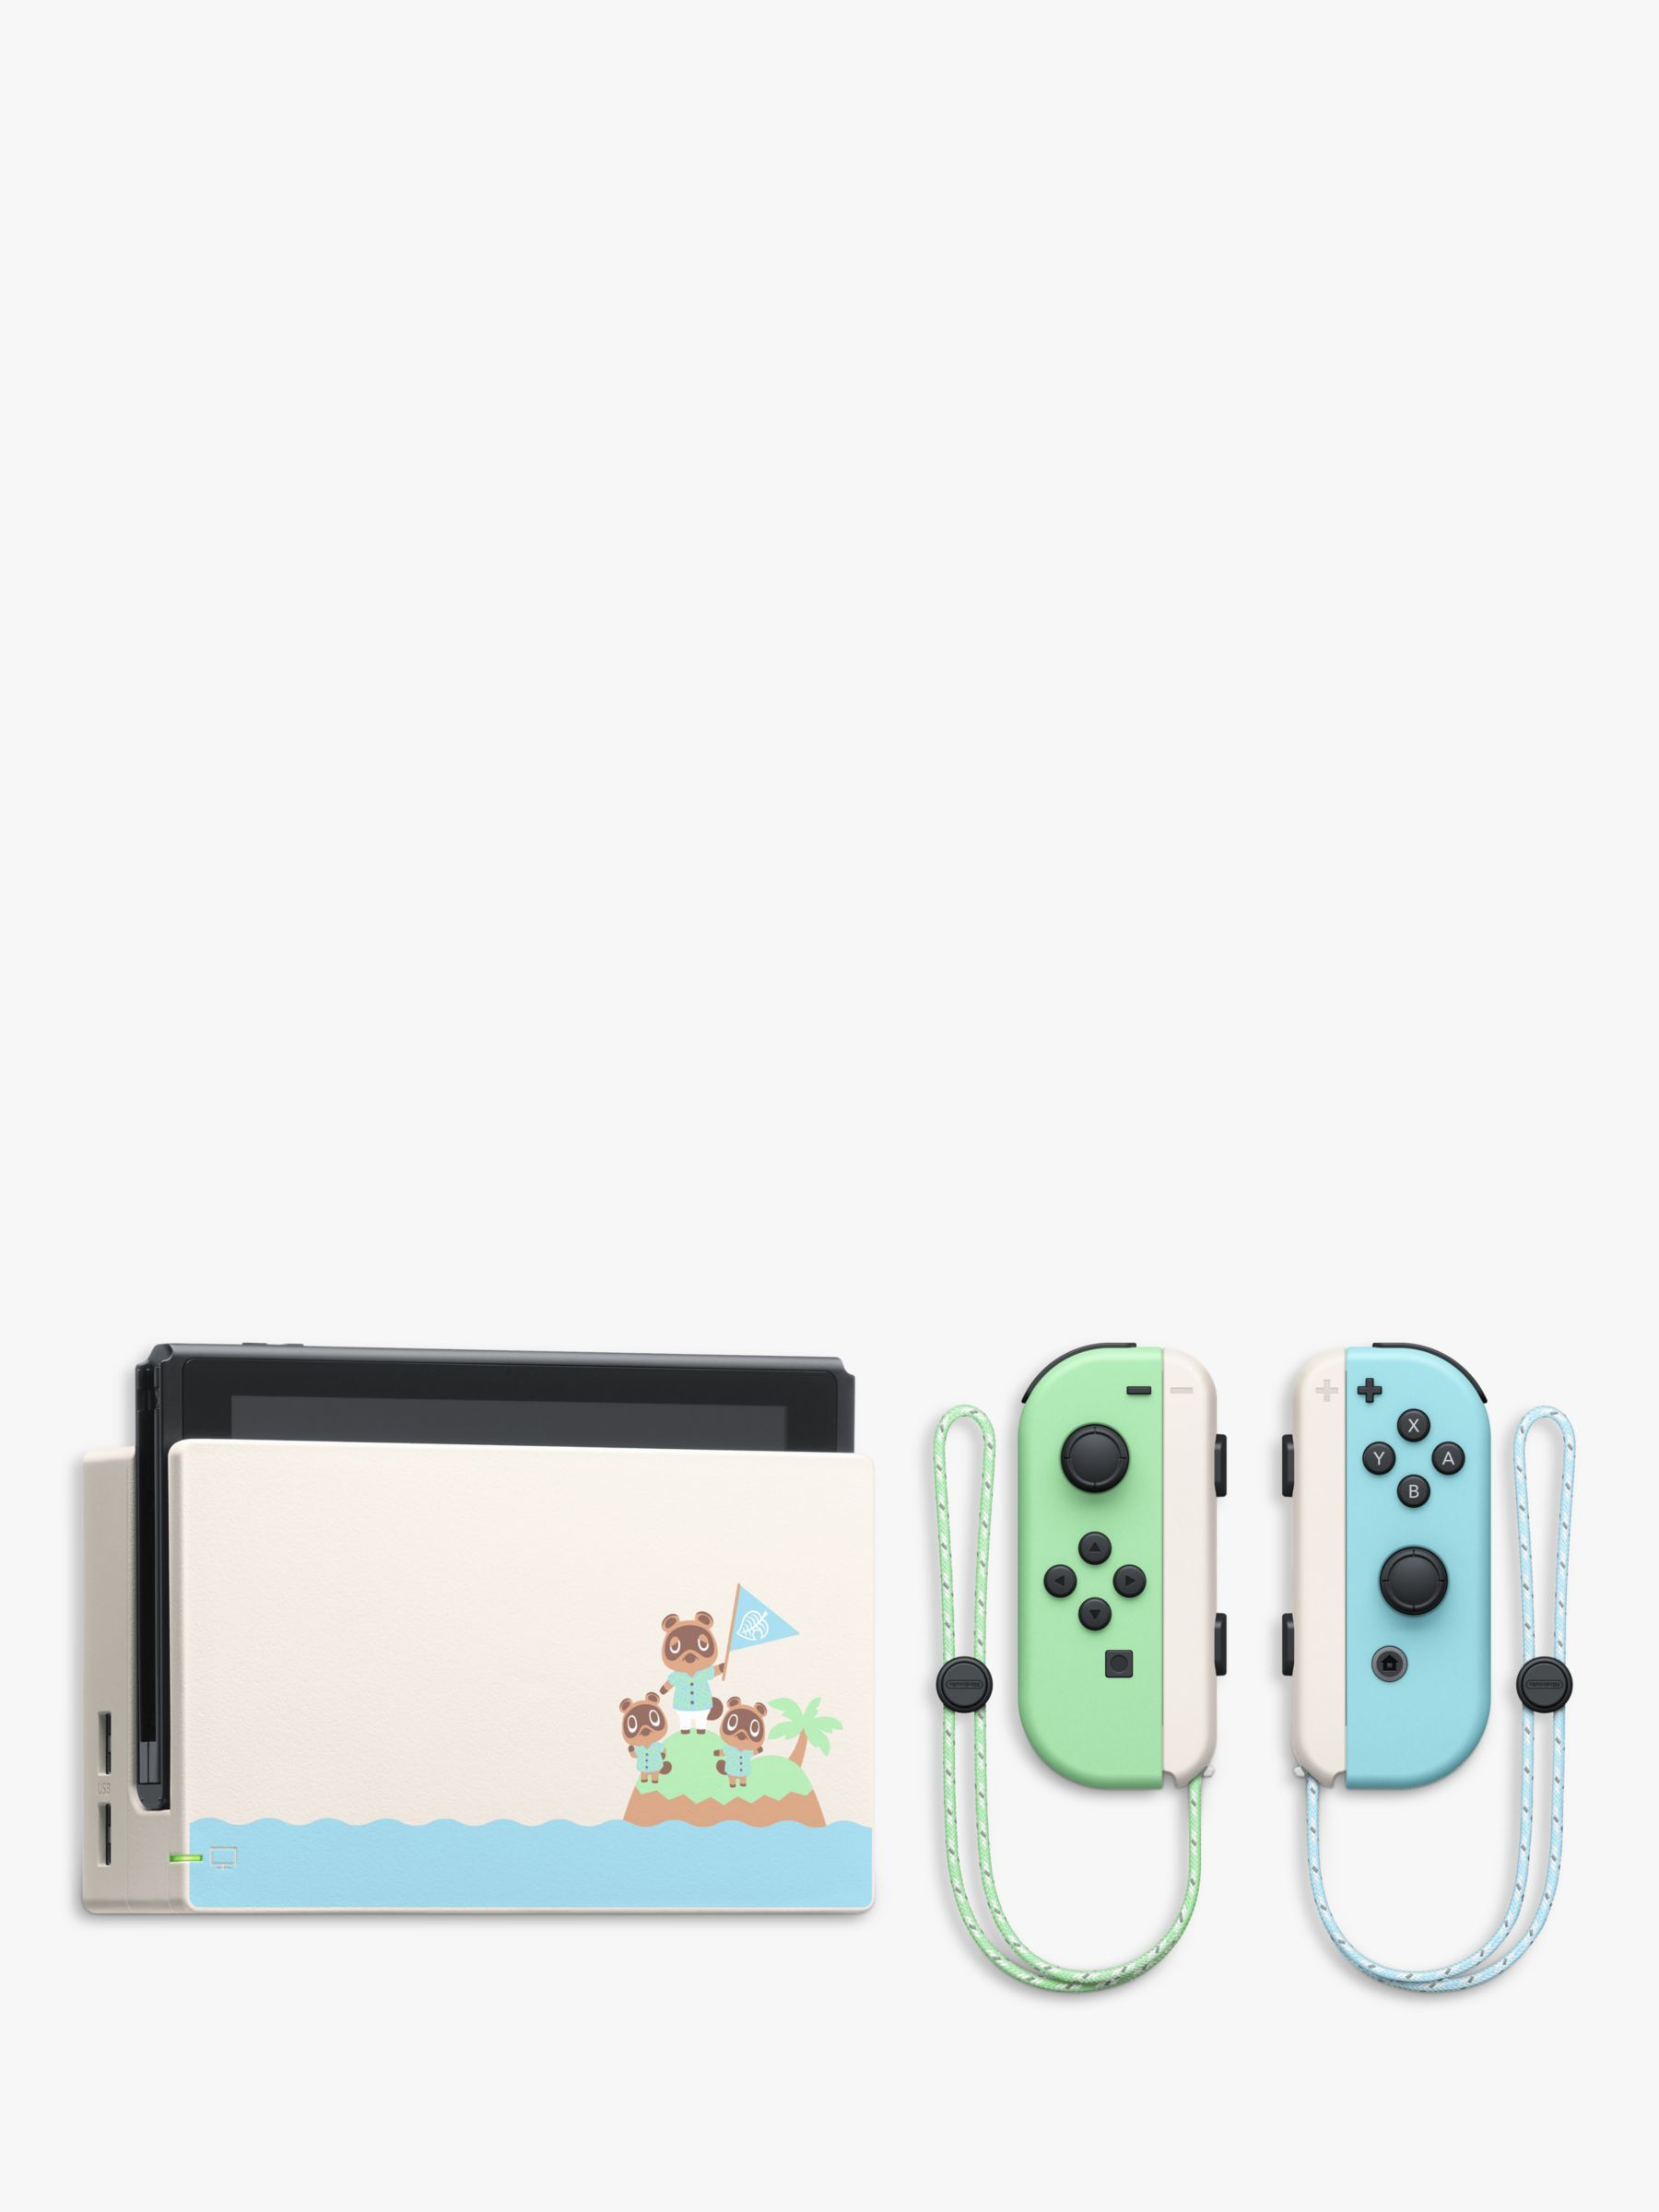 Nintendo Switch 1 1 Console With Animal Crossing New Horizons